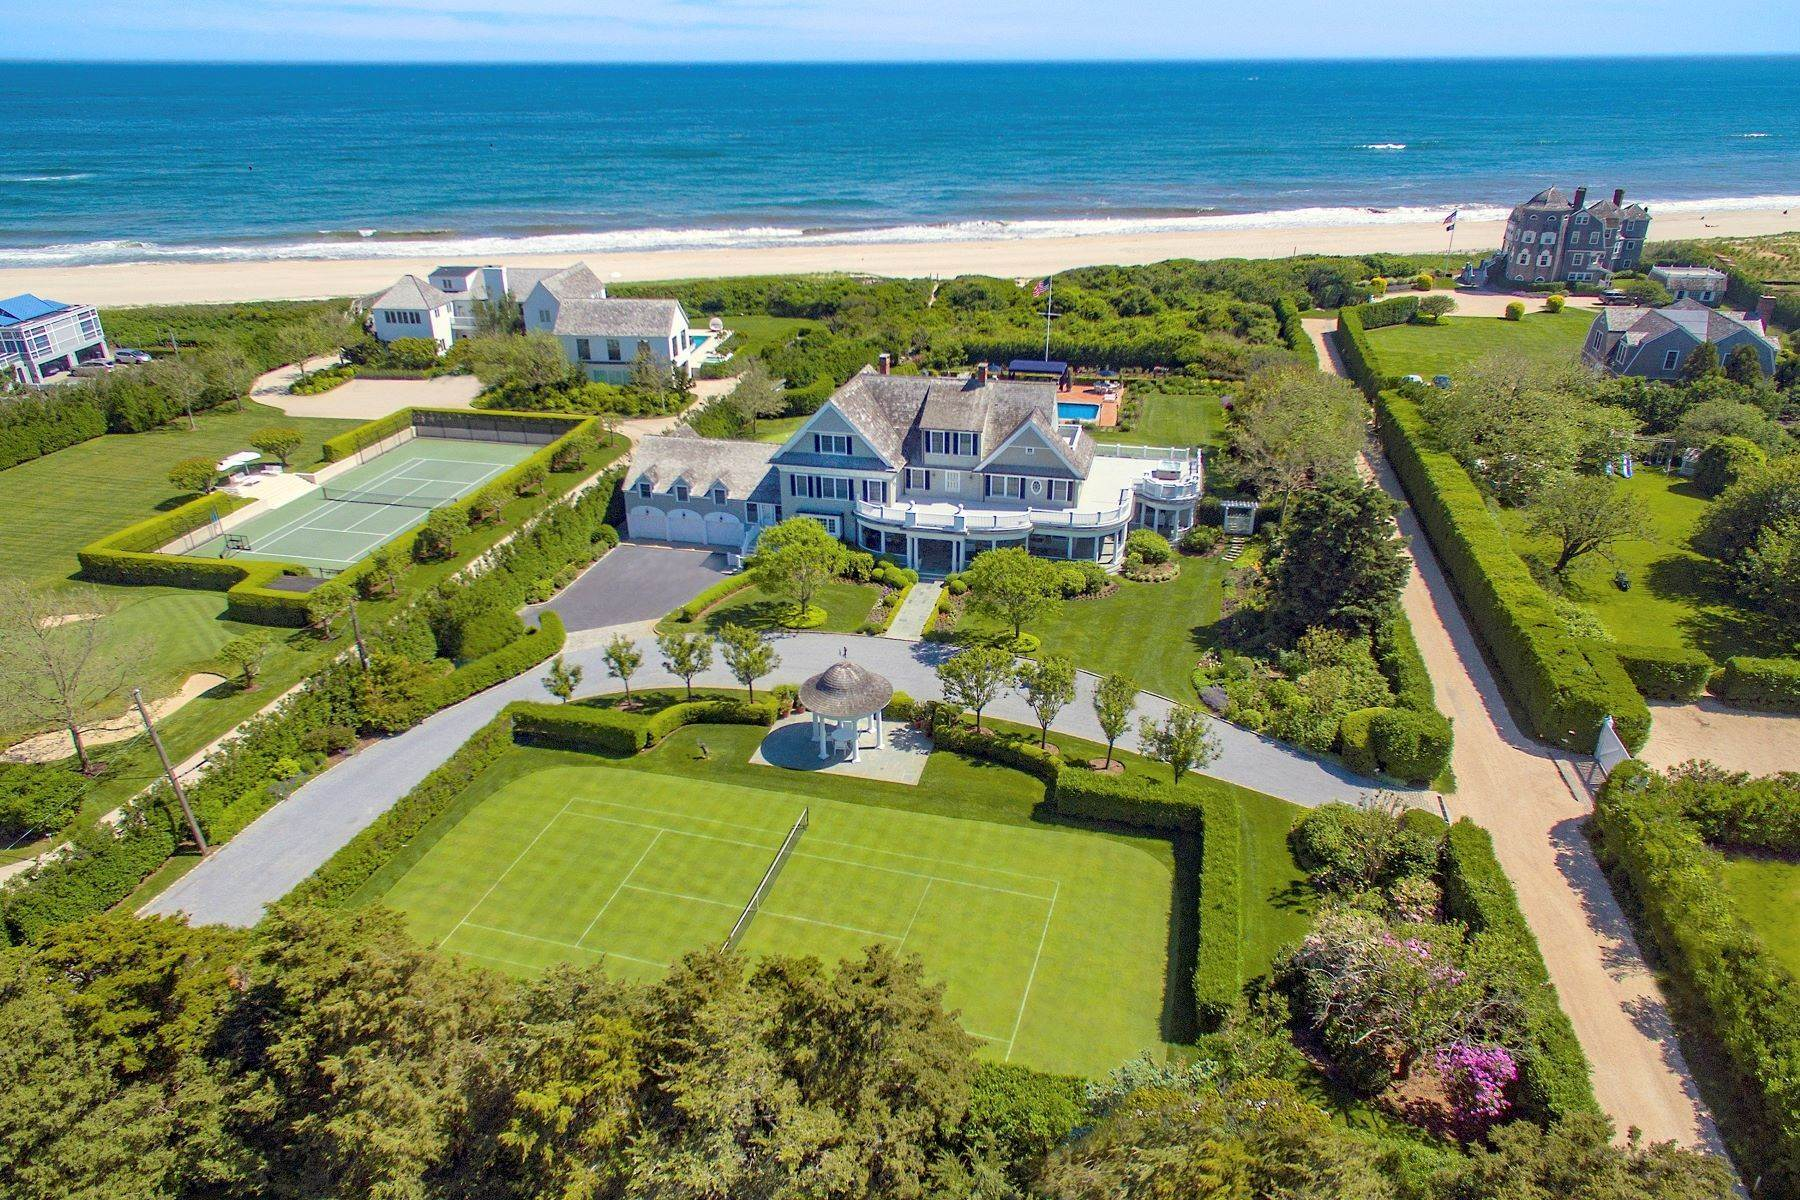 Single Family Homes for Active at 'Ocean Dream' Estate With Pool & Tennis 5 Fair Lea (Aka 36 Gin Lane) Southampton, New York 11968 United States